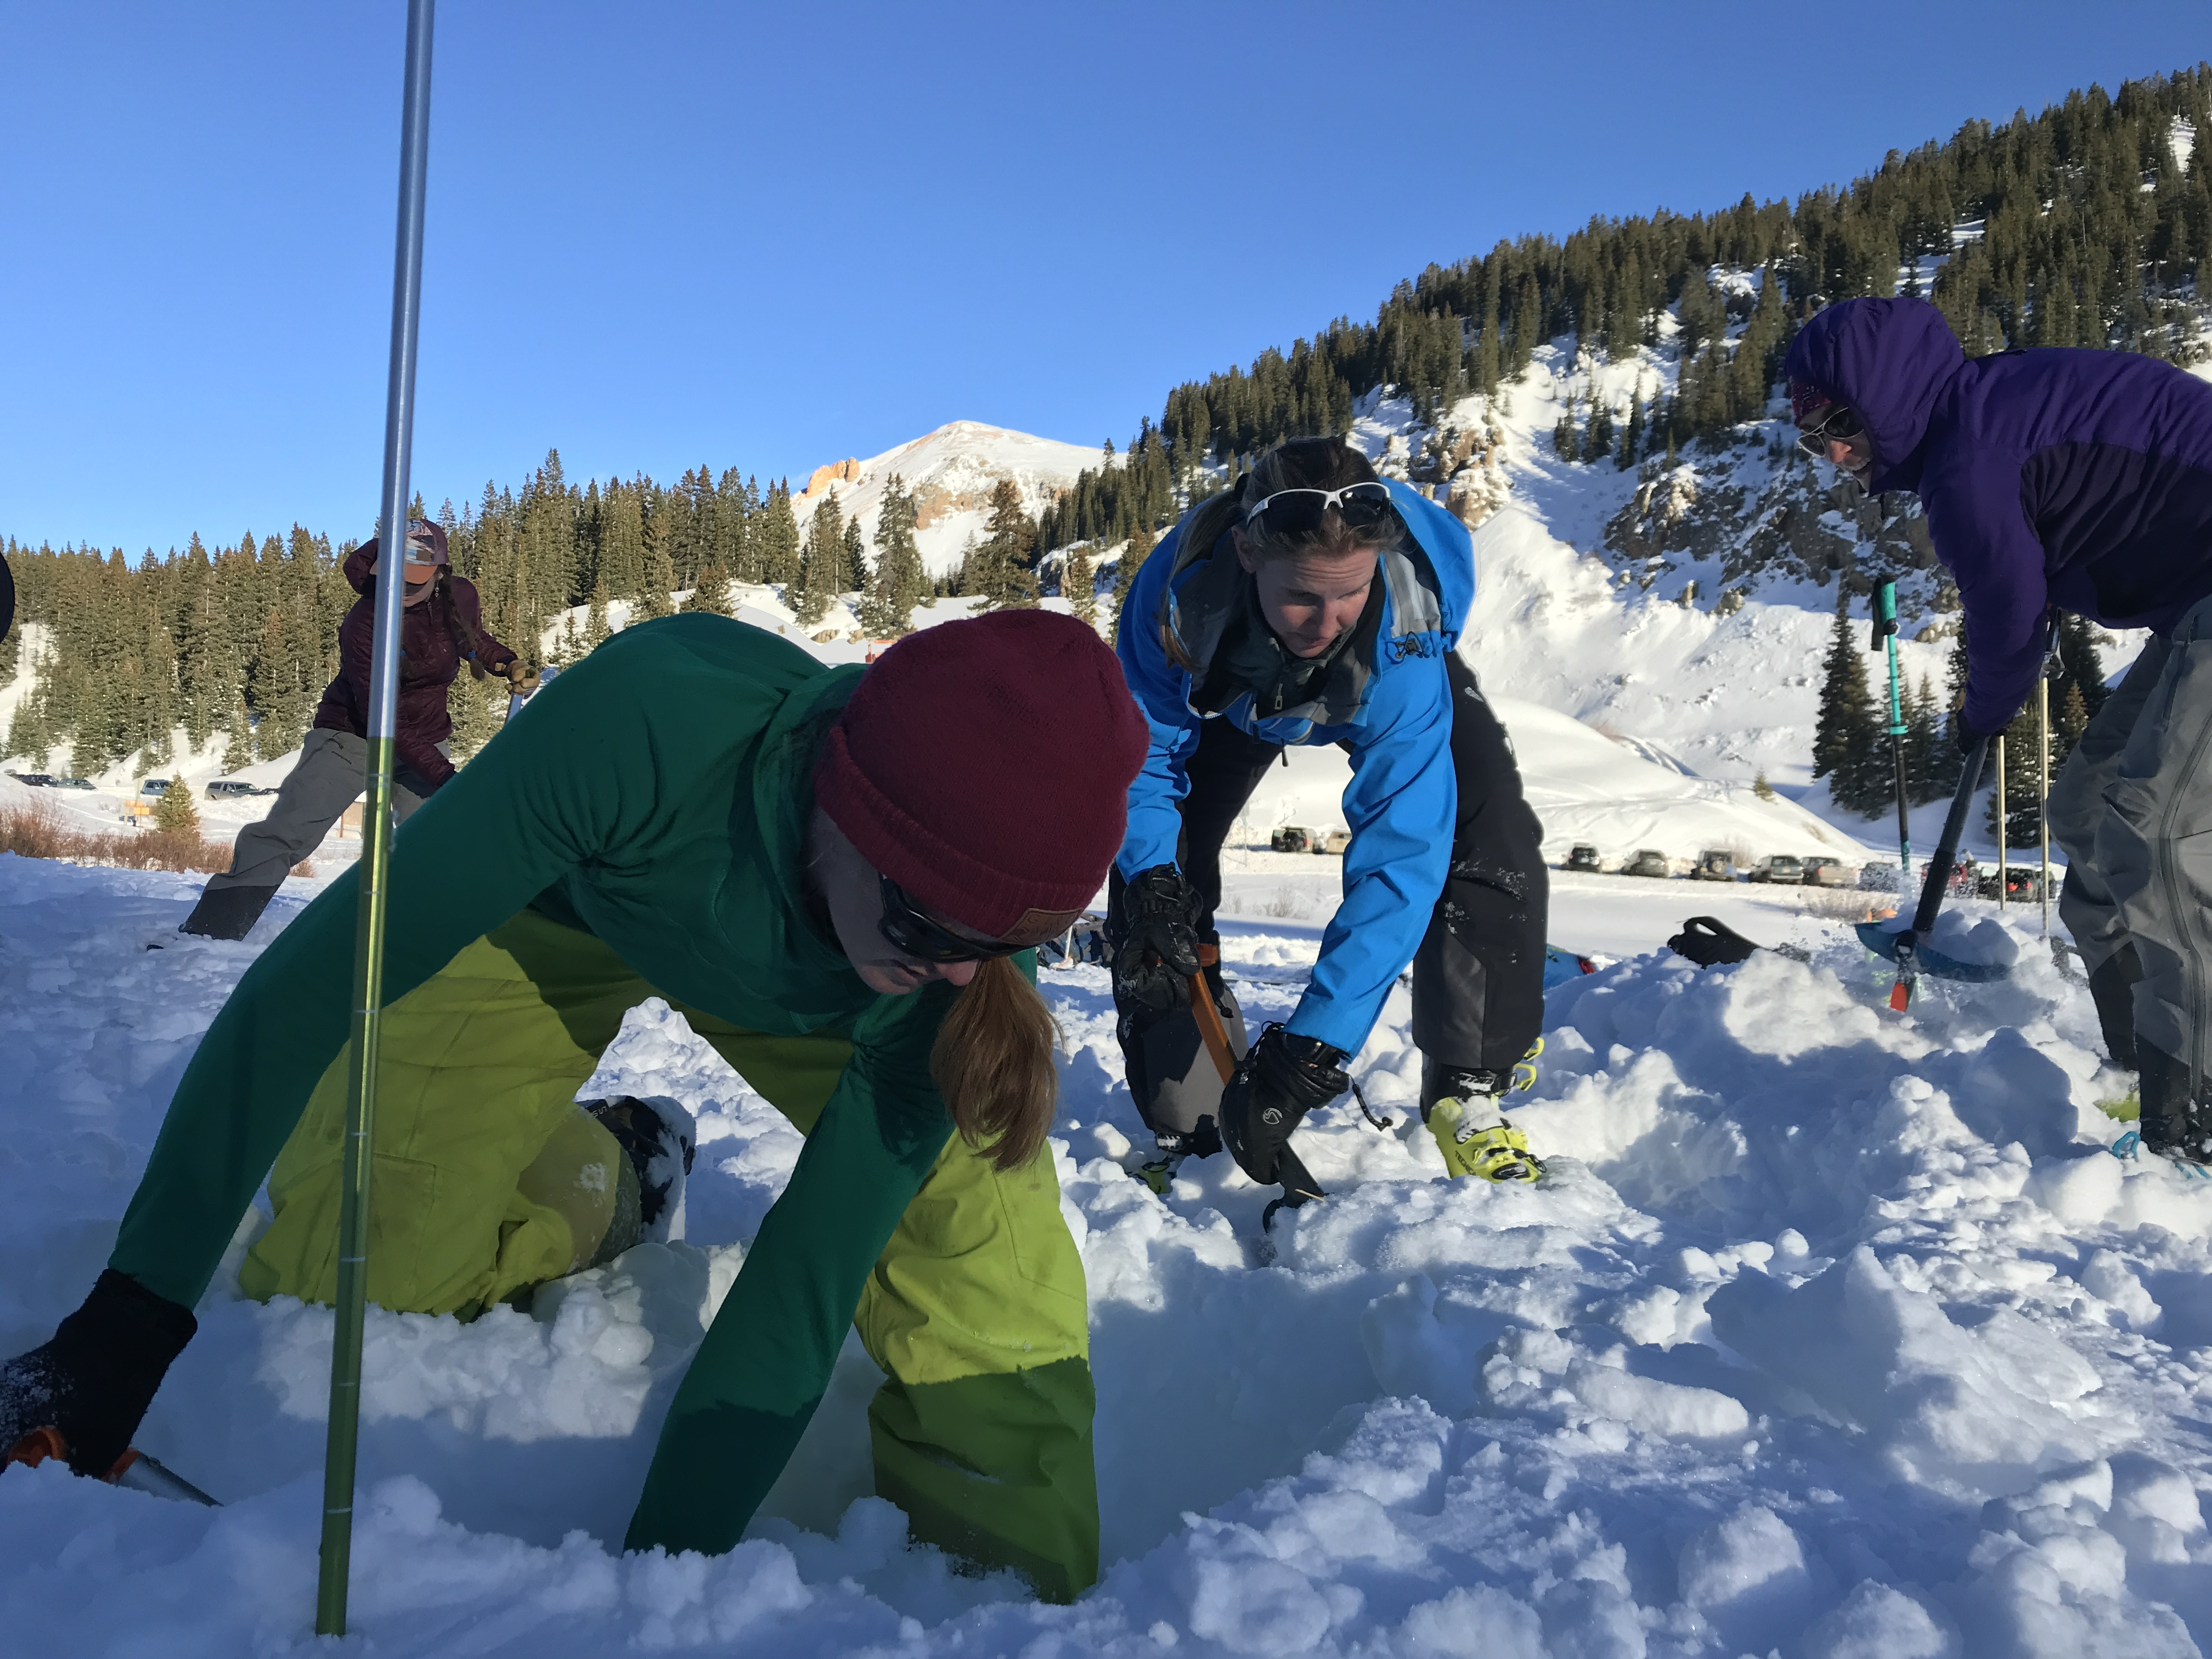 Chicks practice digging at an avalanche rescue course